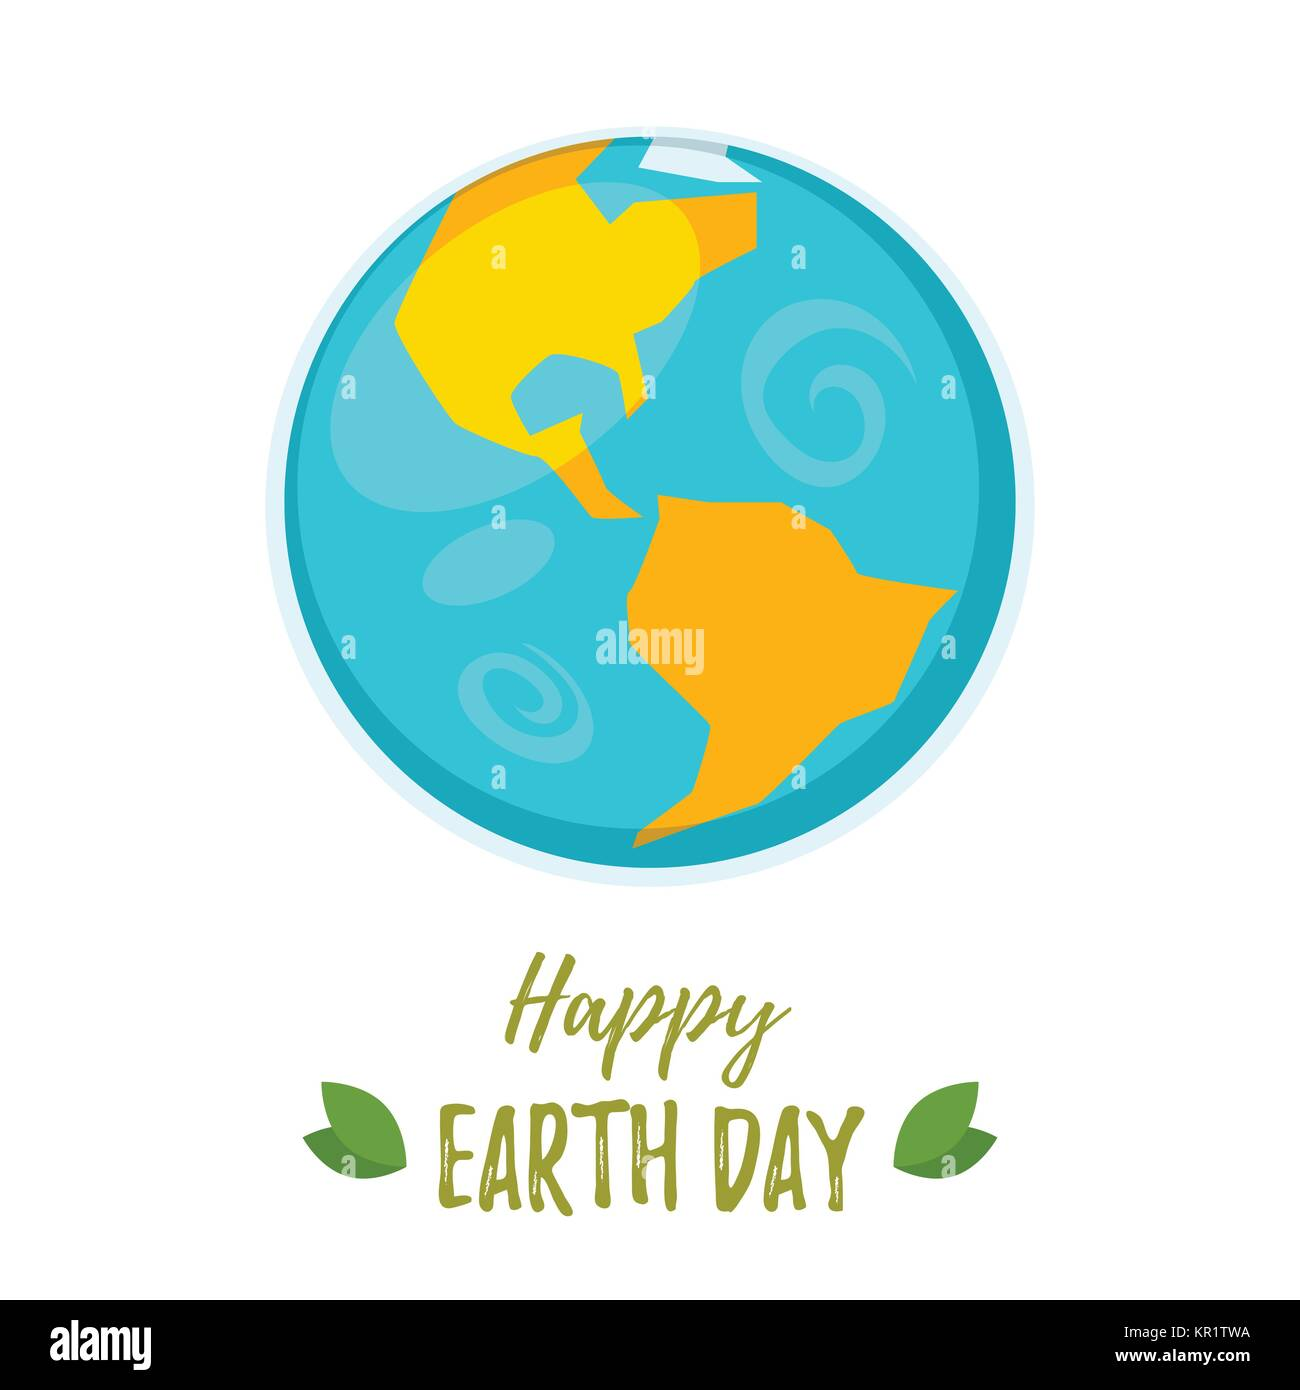 Earth Day greeting card - Stock Image